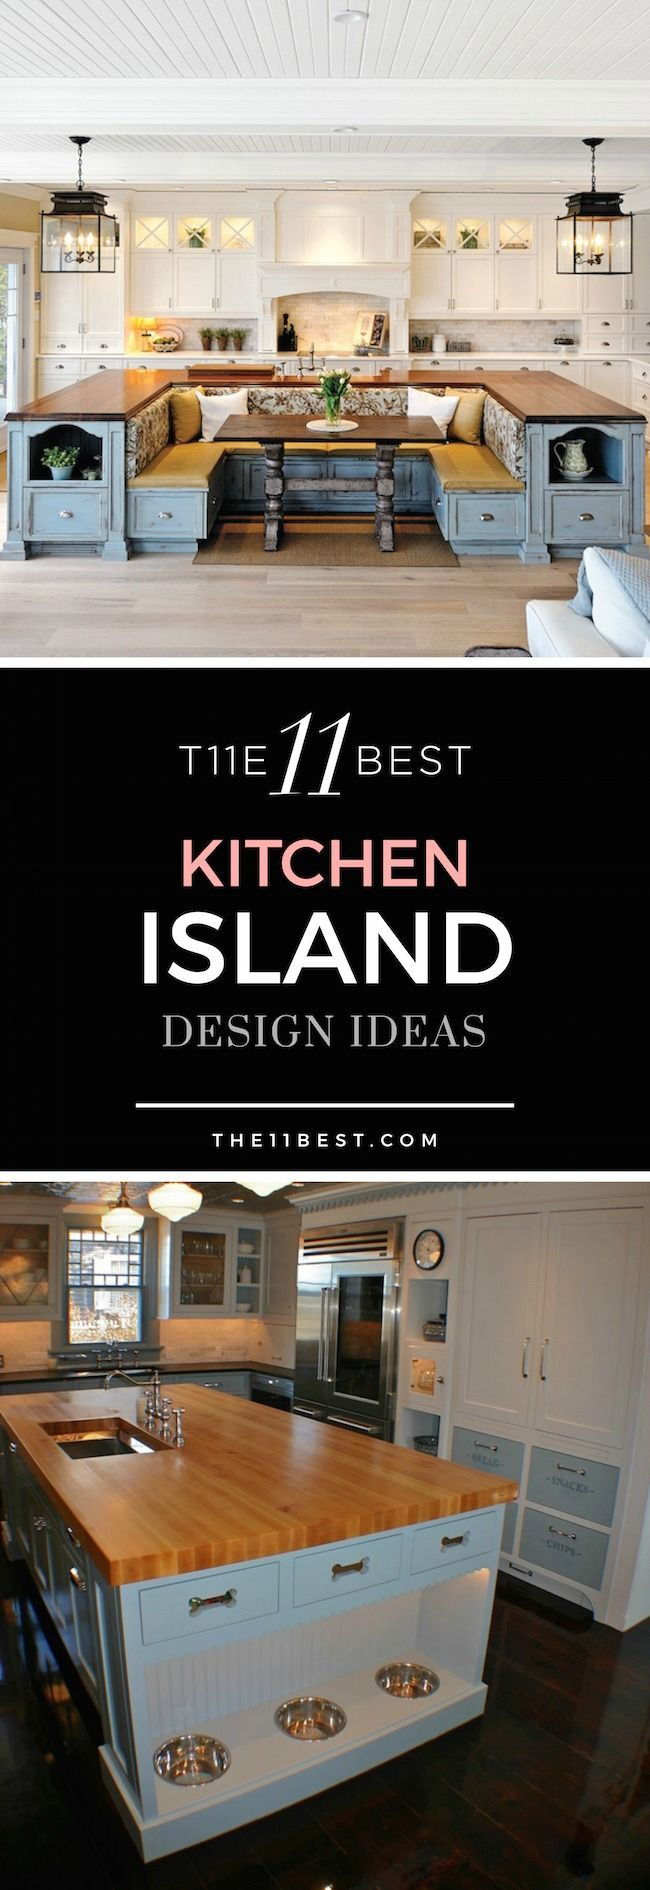 home building ideas kitchen remodeling montgomery al 11 Enjoyable DIY Project for the Kitchen